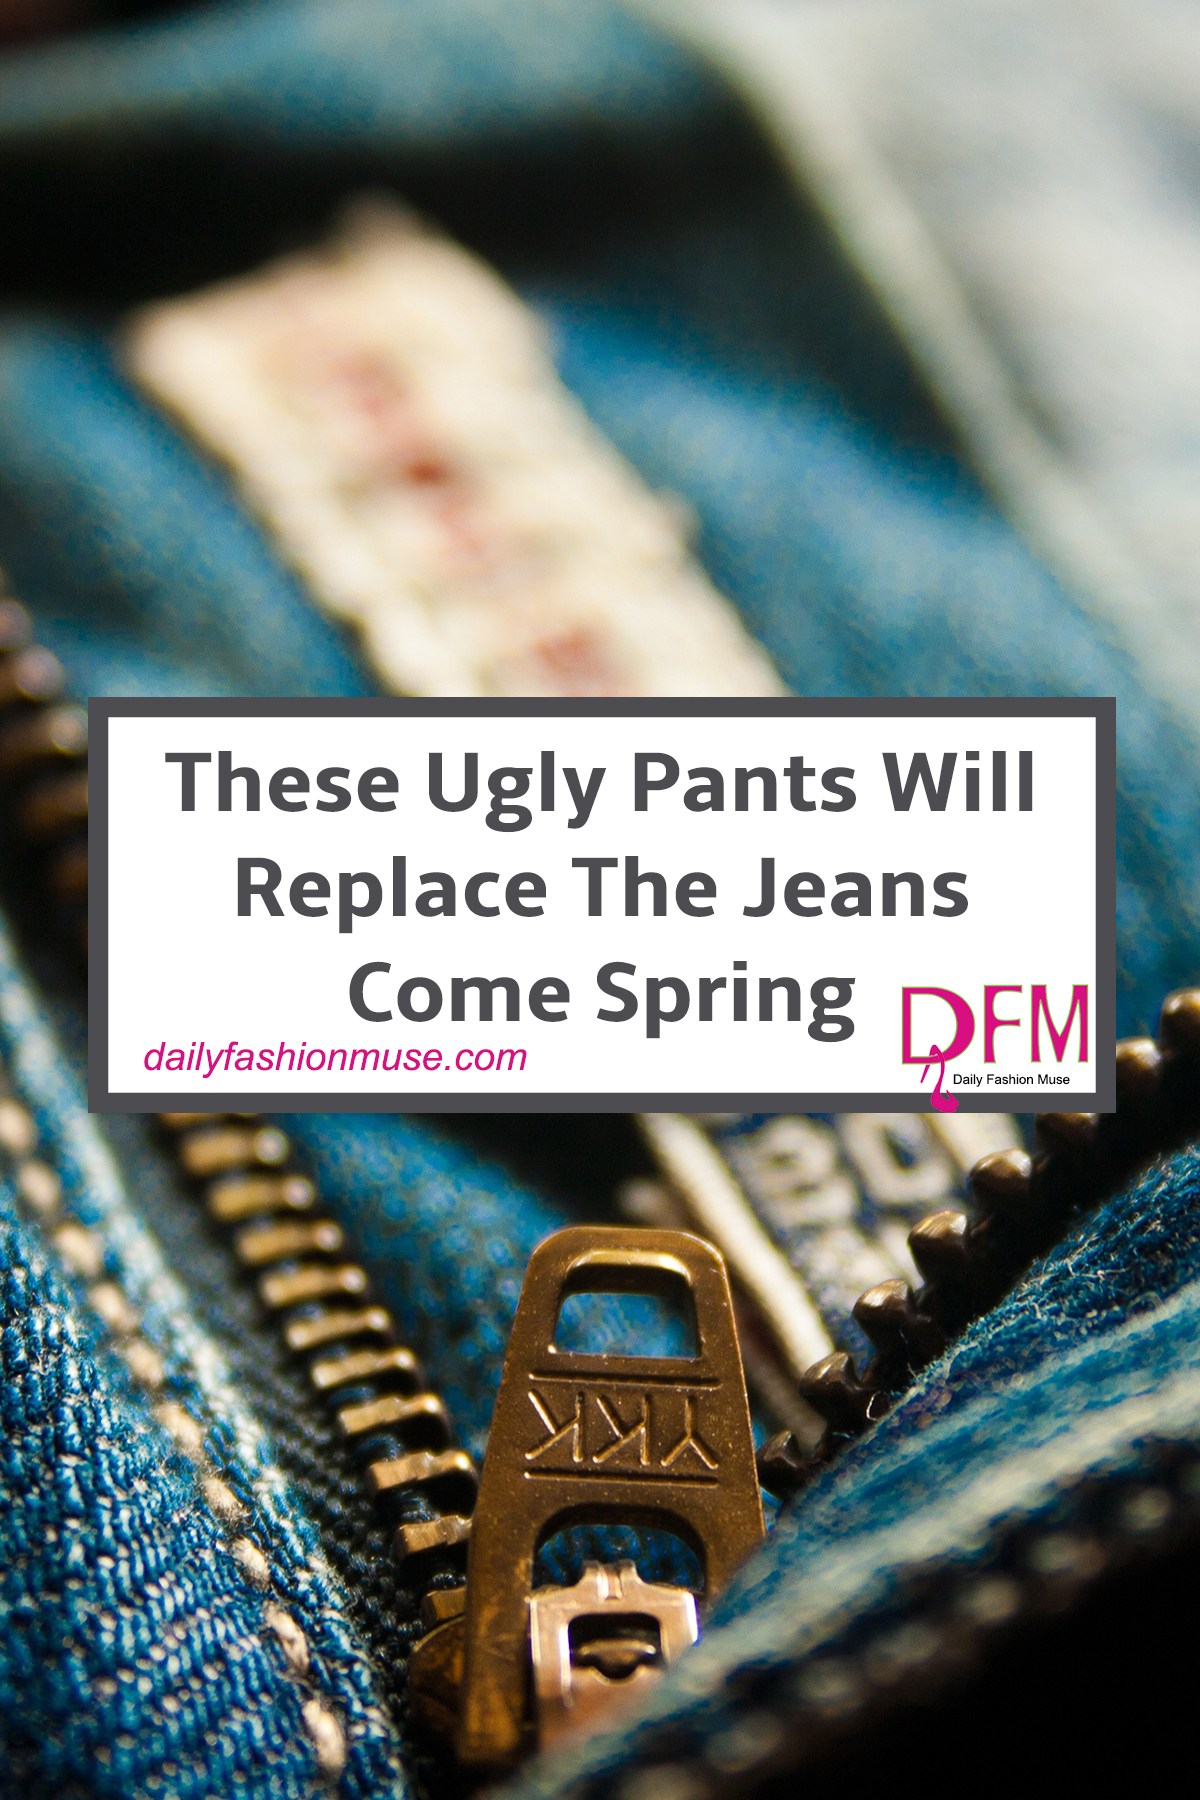 """Ugly pants are trending for spring. Magazines say they will be this year's """"it"""" jean. Will you wear the khakis trend? Check out new styles that may inspire"""